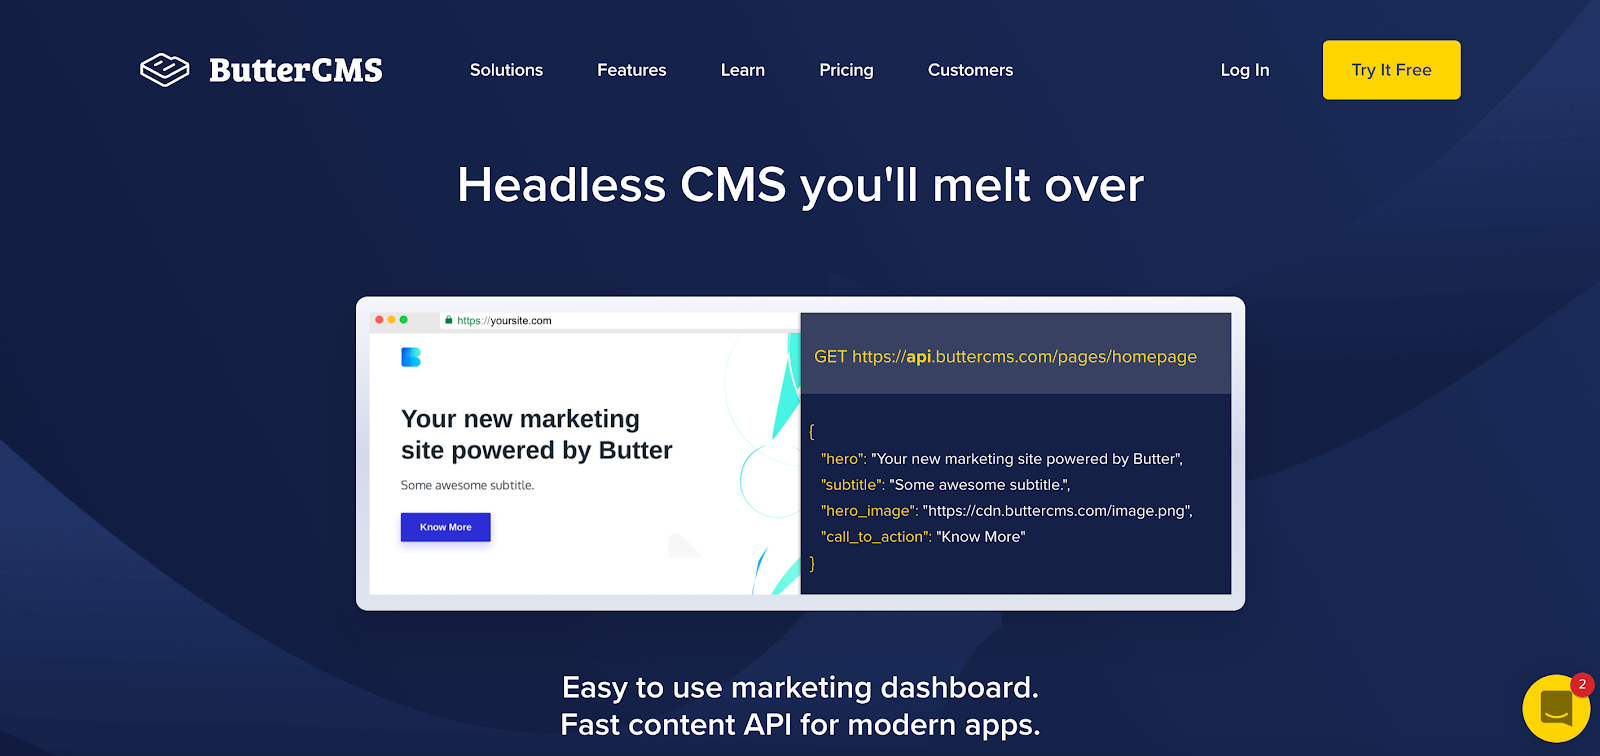 Butter CMS is famed for its blogging features, but it's a CMS with features that cater to the whole tech stack